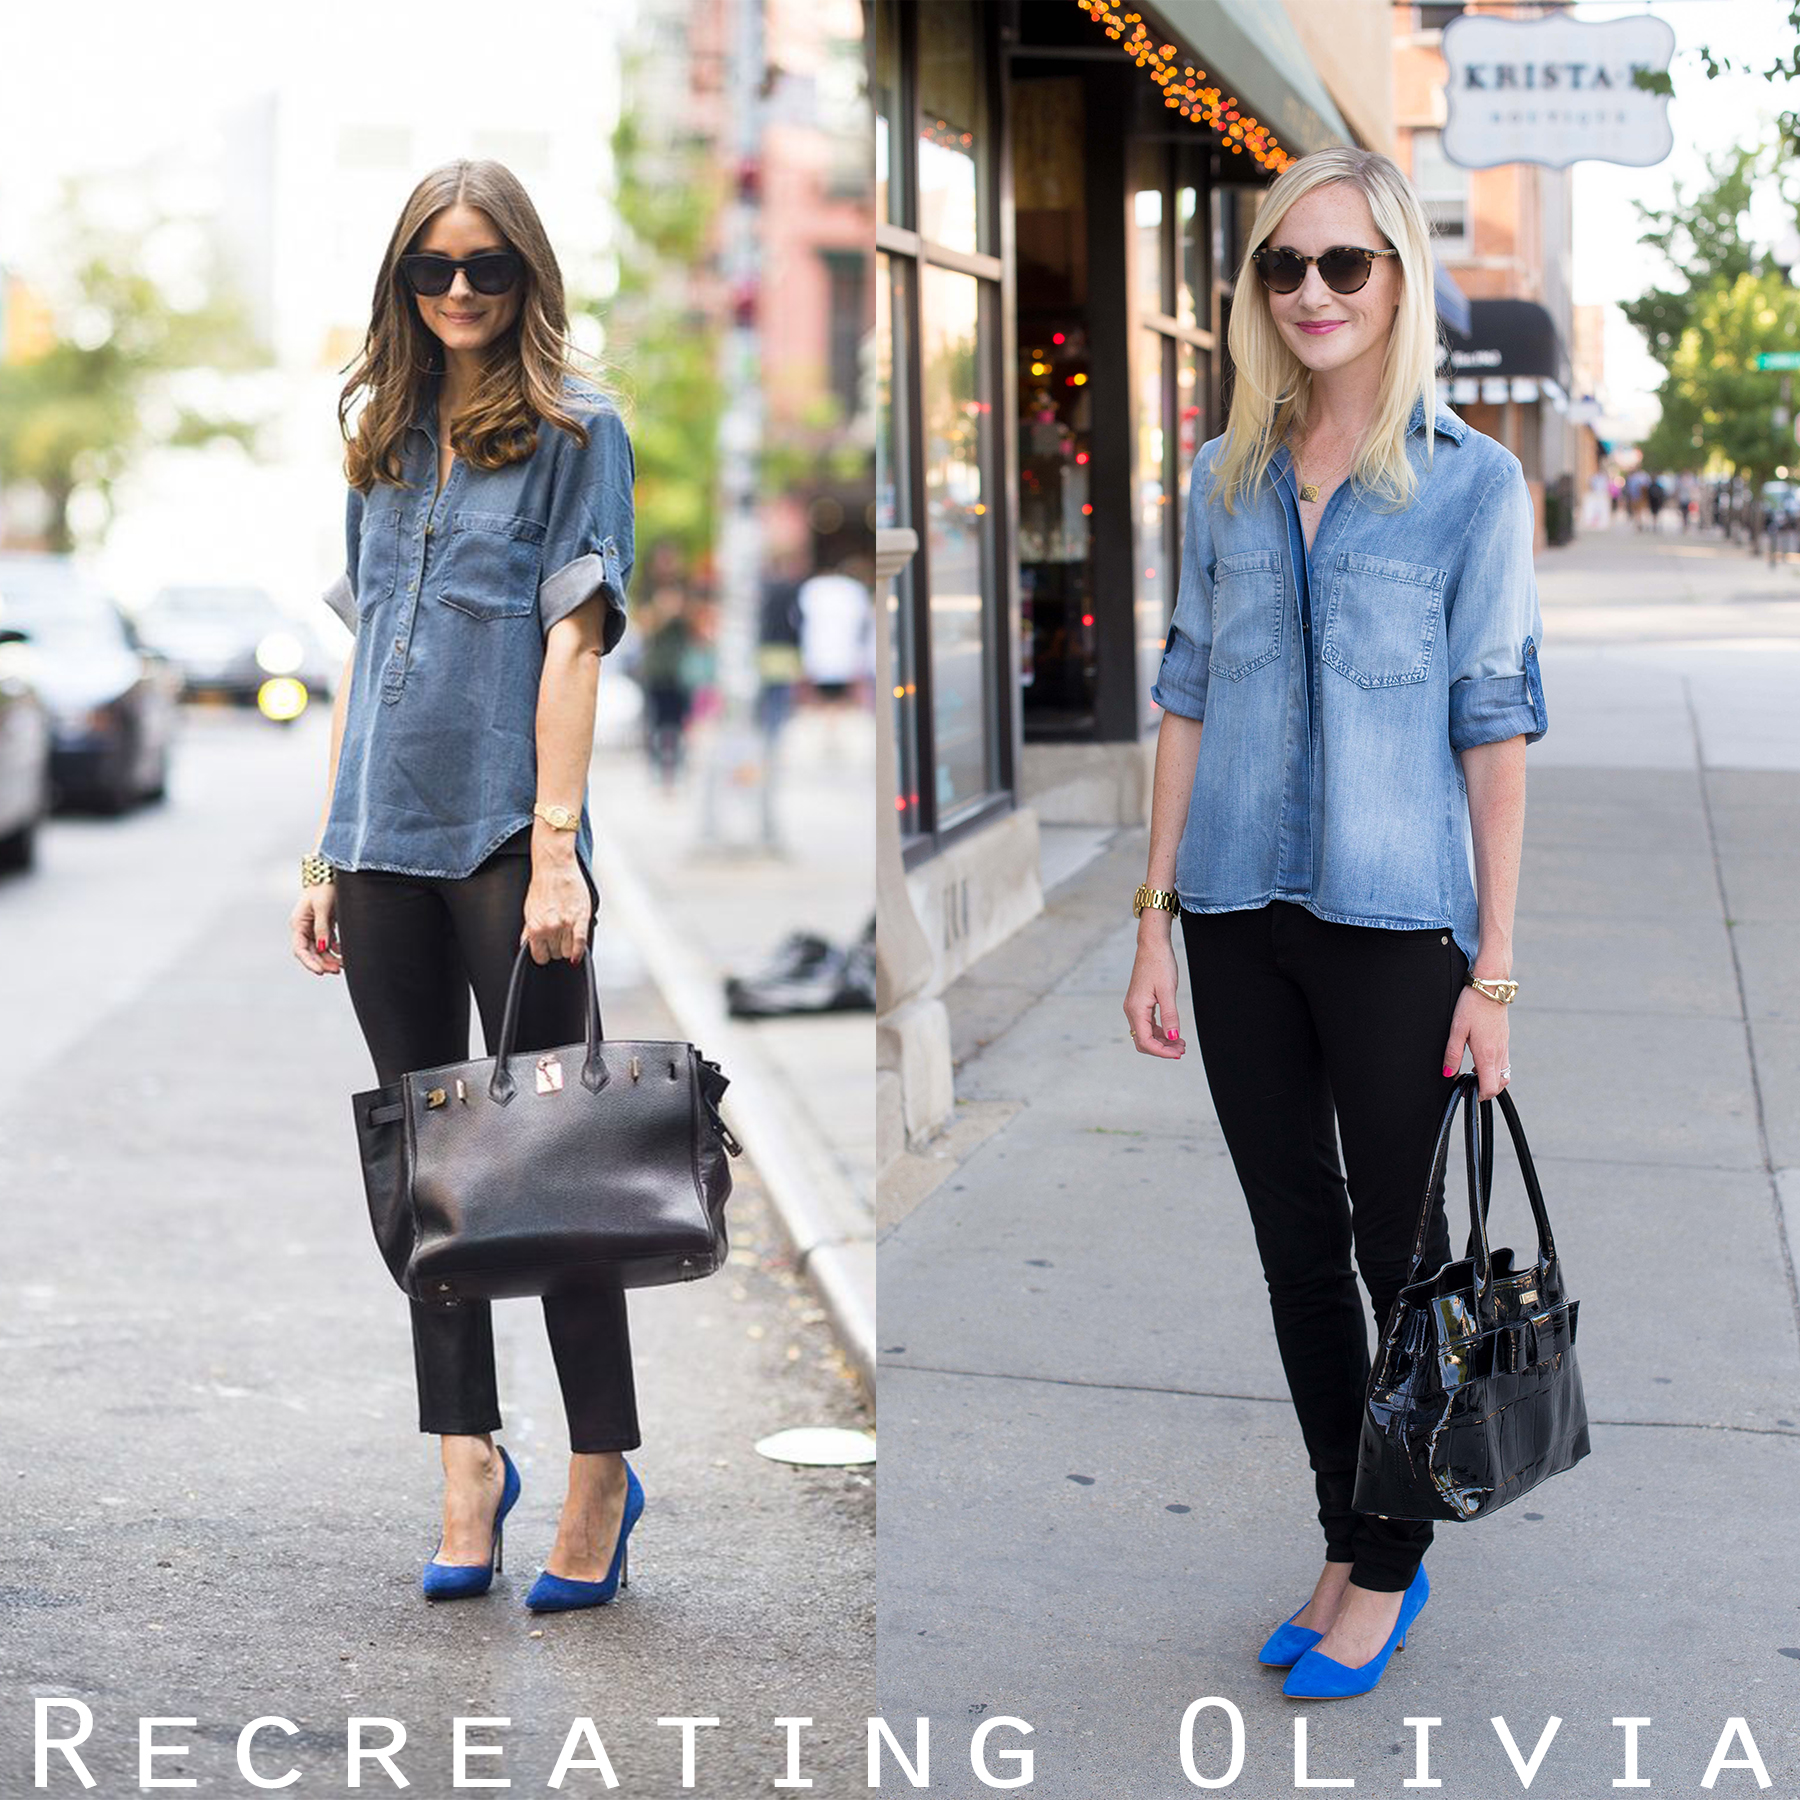 a58a87f028 Recreating the Olivia Palermo Chambray Look with Bella Dahl - Kelly ...